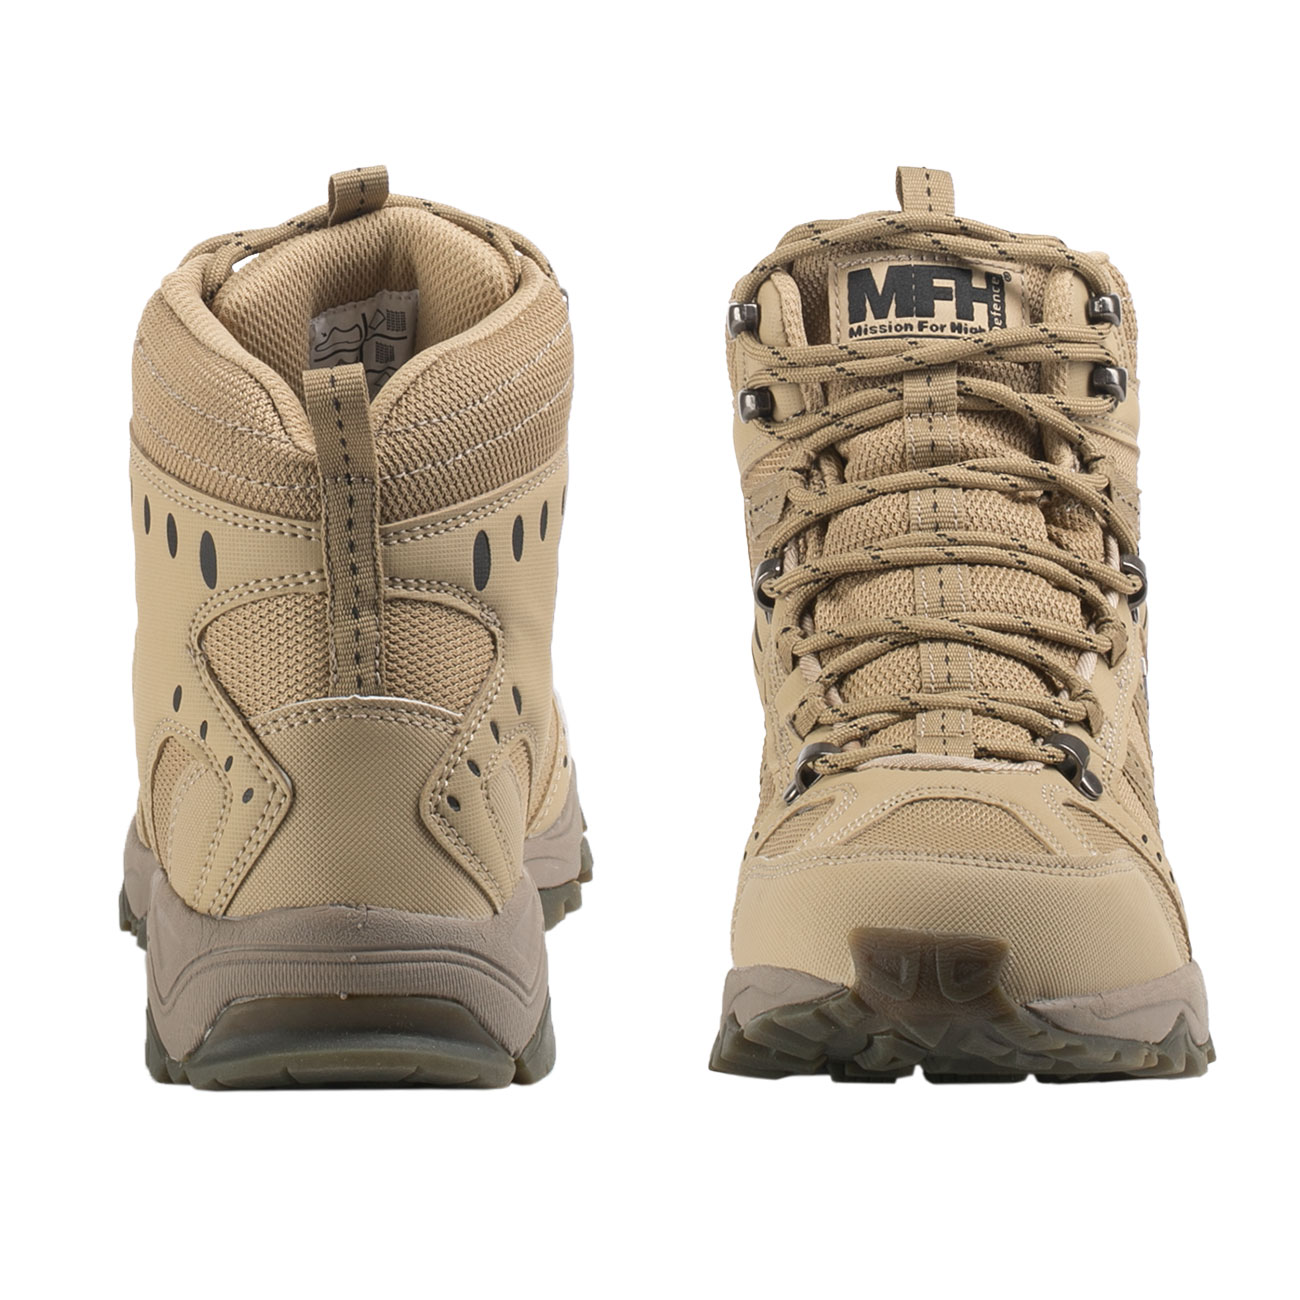 MFH Einsatzstiefel Tactical coyote tan 4